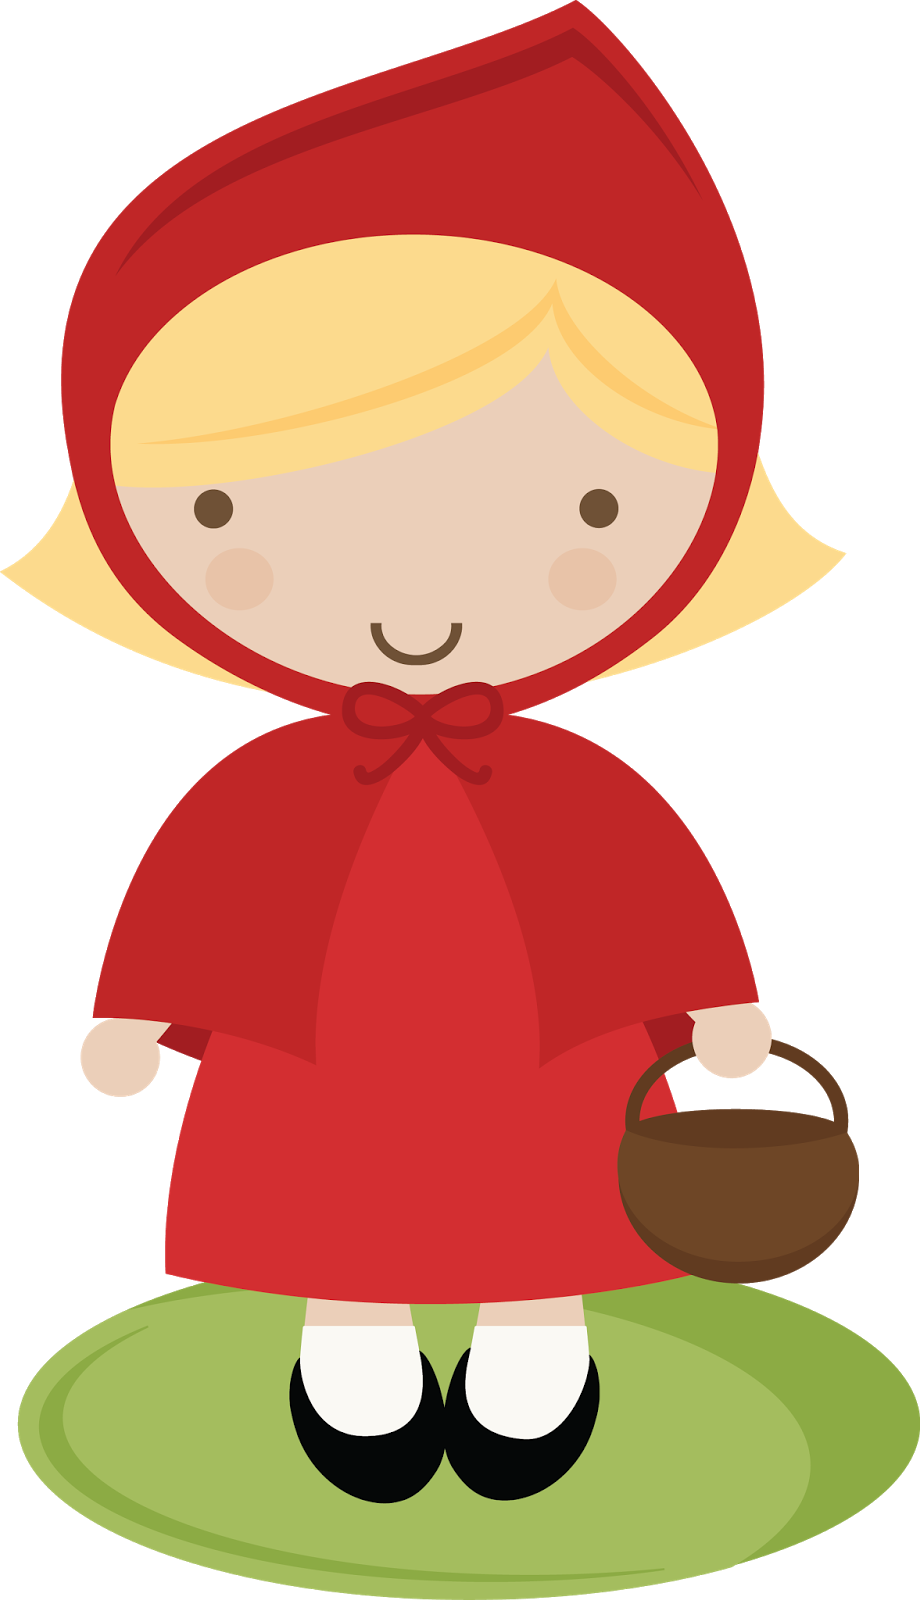 920x1600 Red Riding Hood Clipart Amp Look At Red Riding Hood Clip Art Images